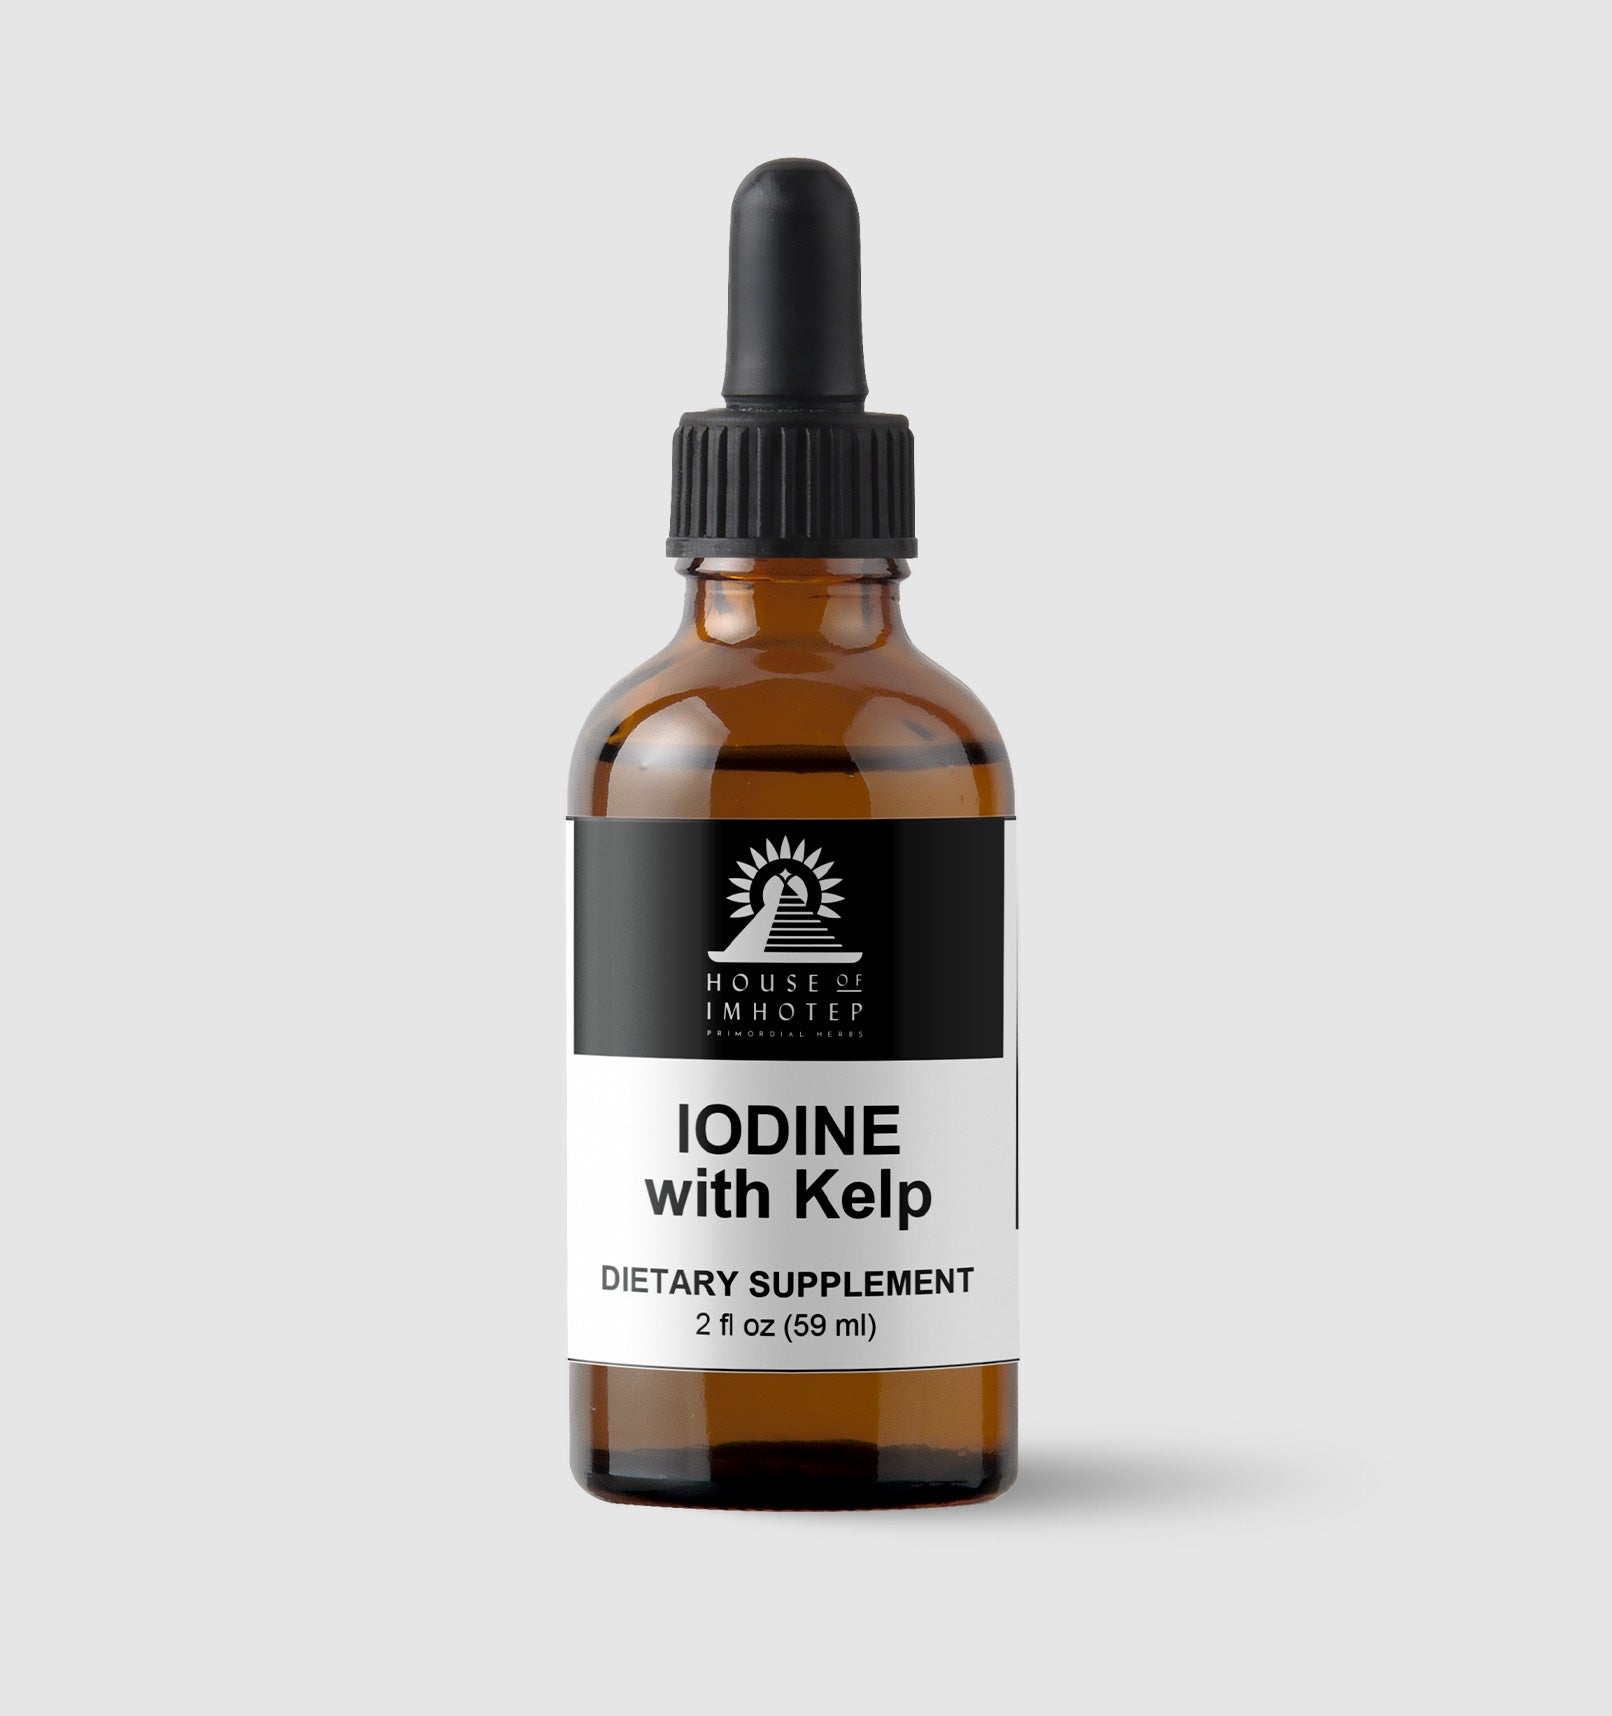 Iodine with Kelp Liquid Extract